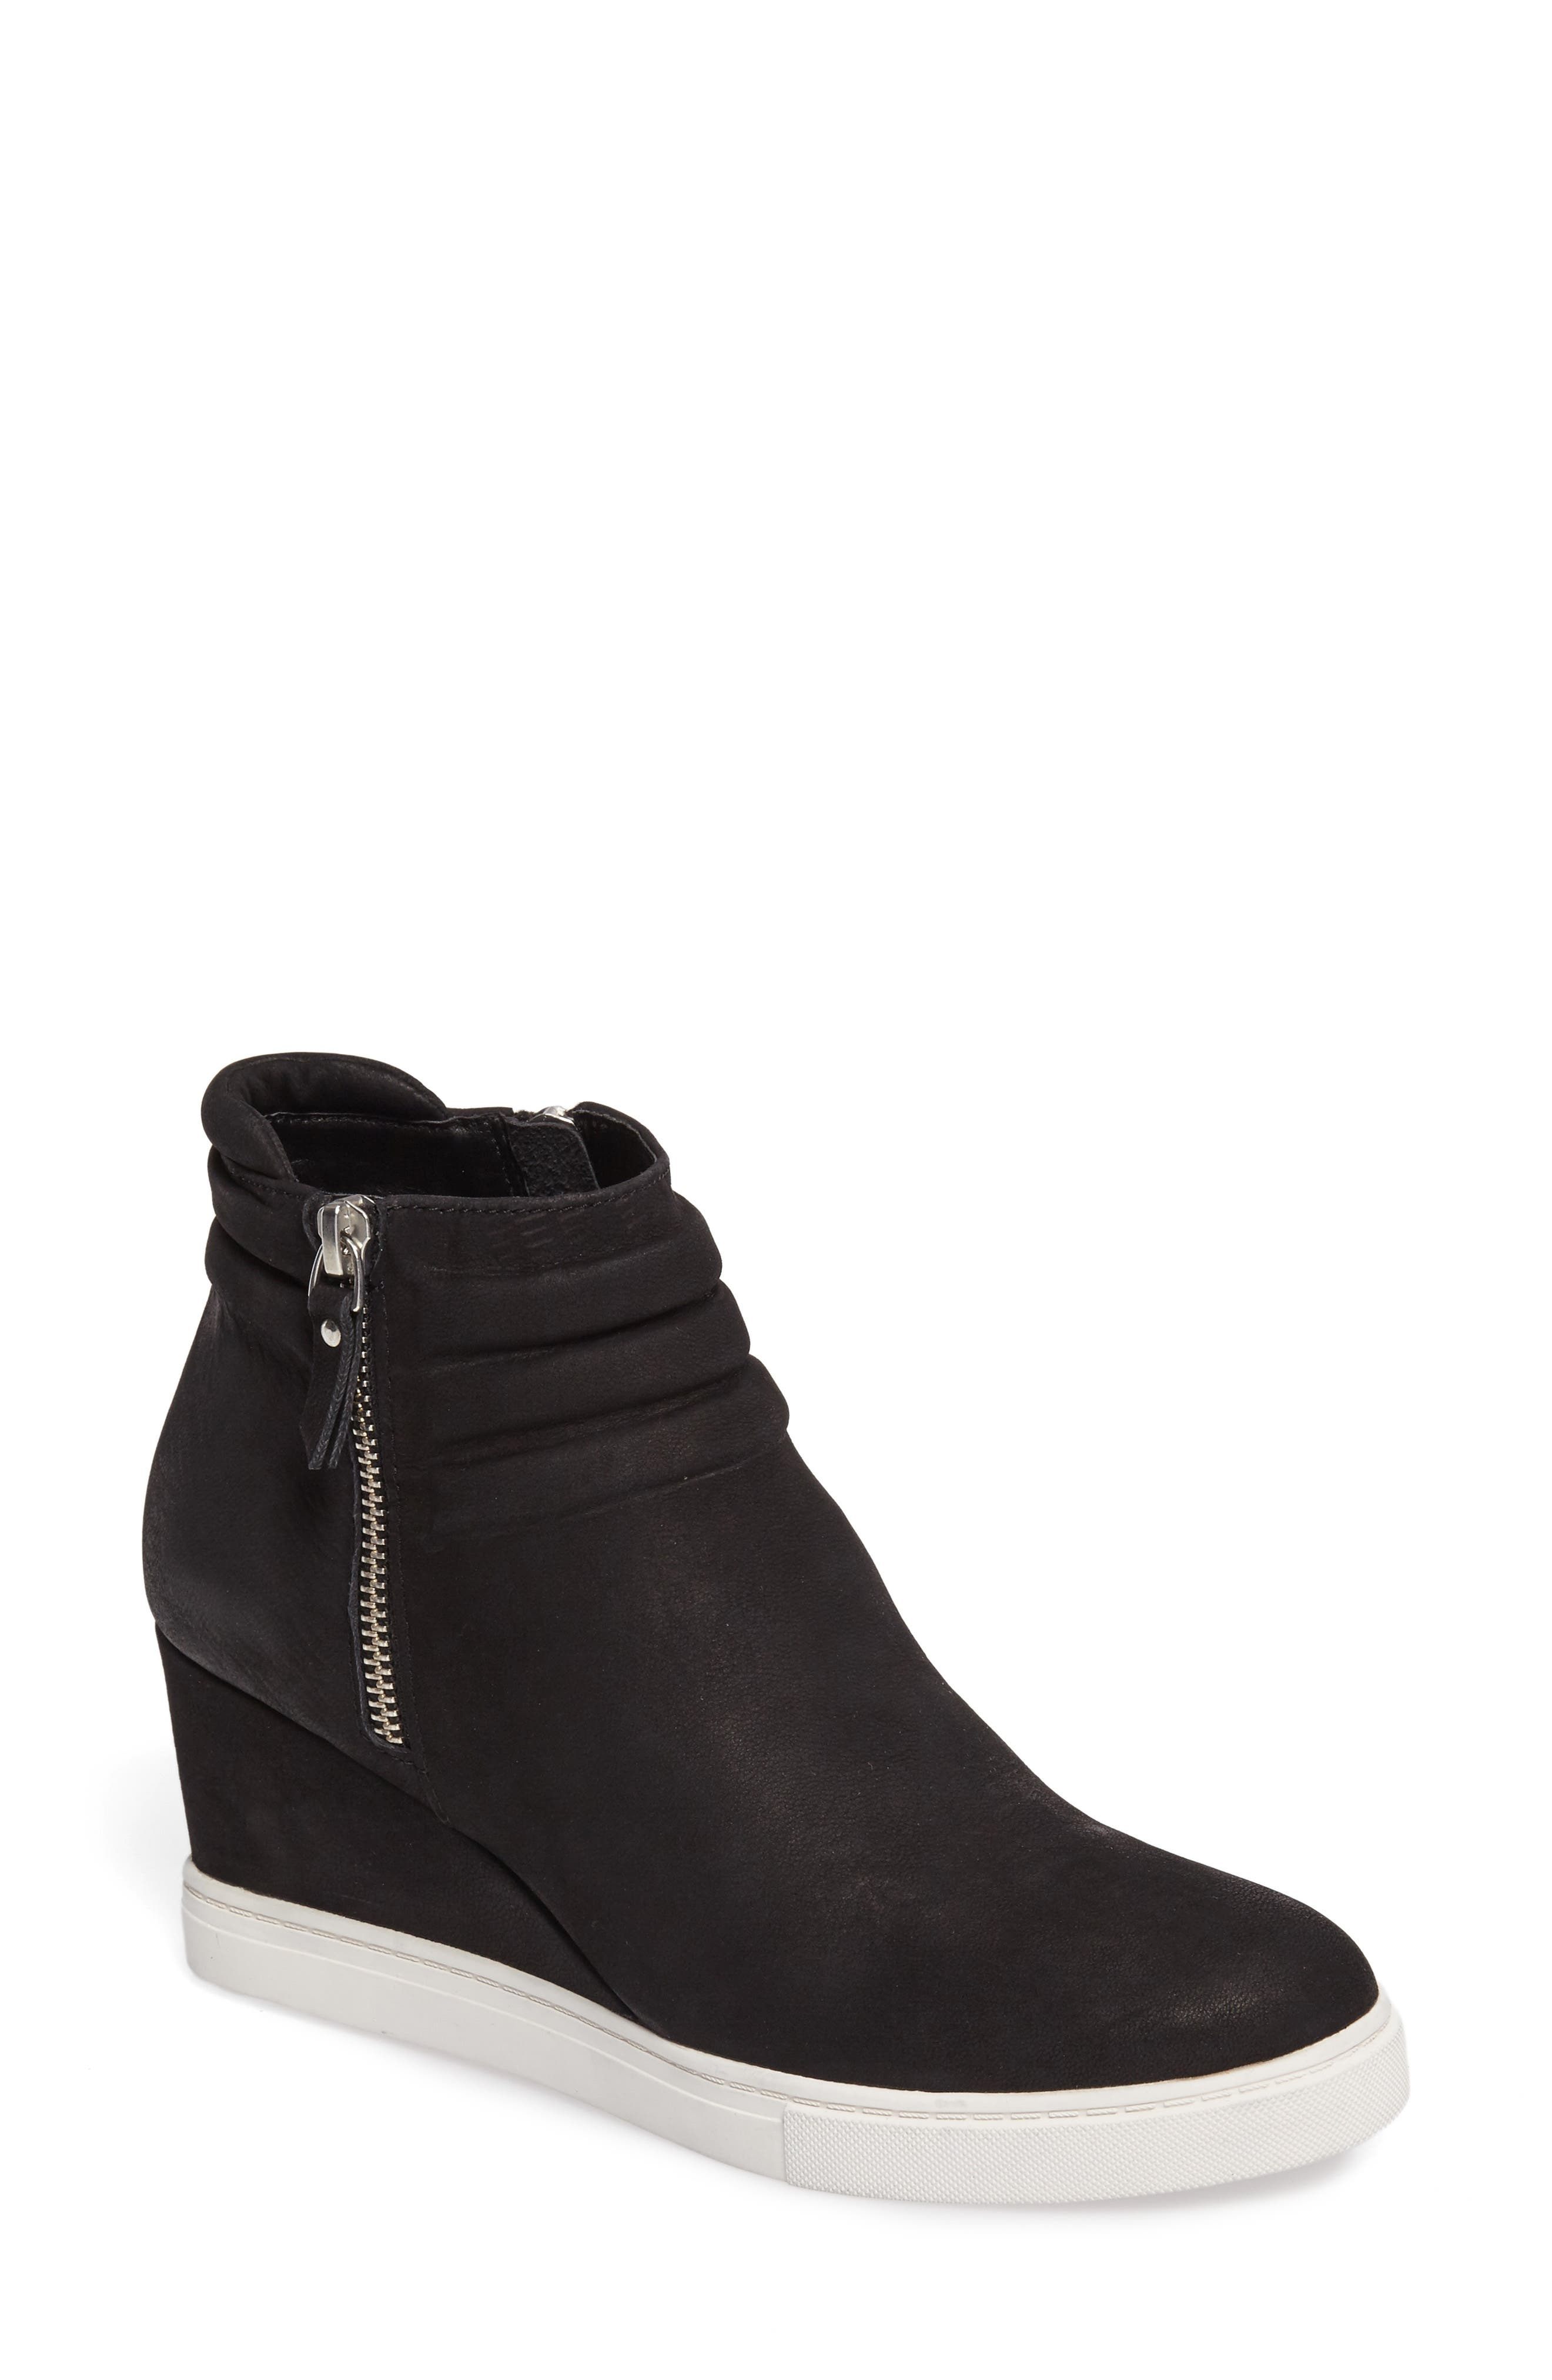 LINEA PAOLO, Frieda Wedge Bootie, Main thumbnail 1, color, BLACK LEATHER